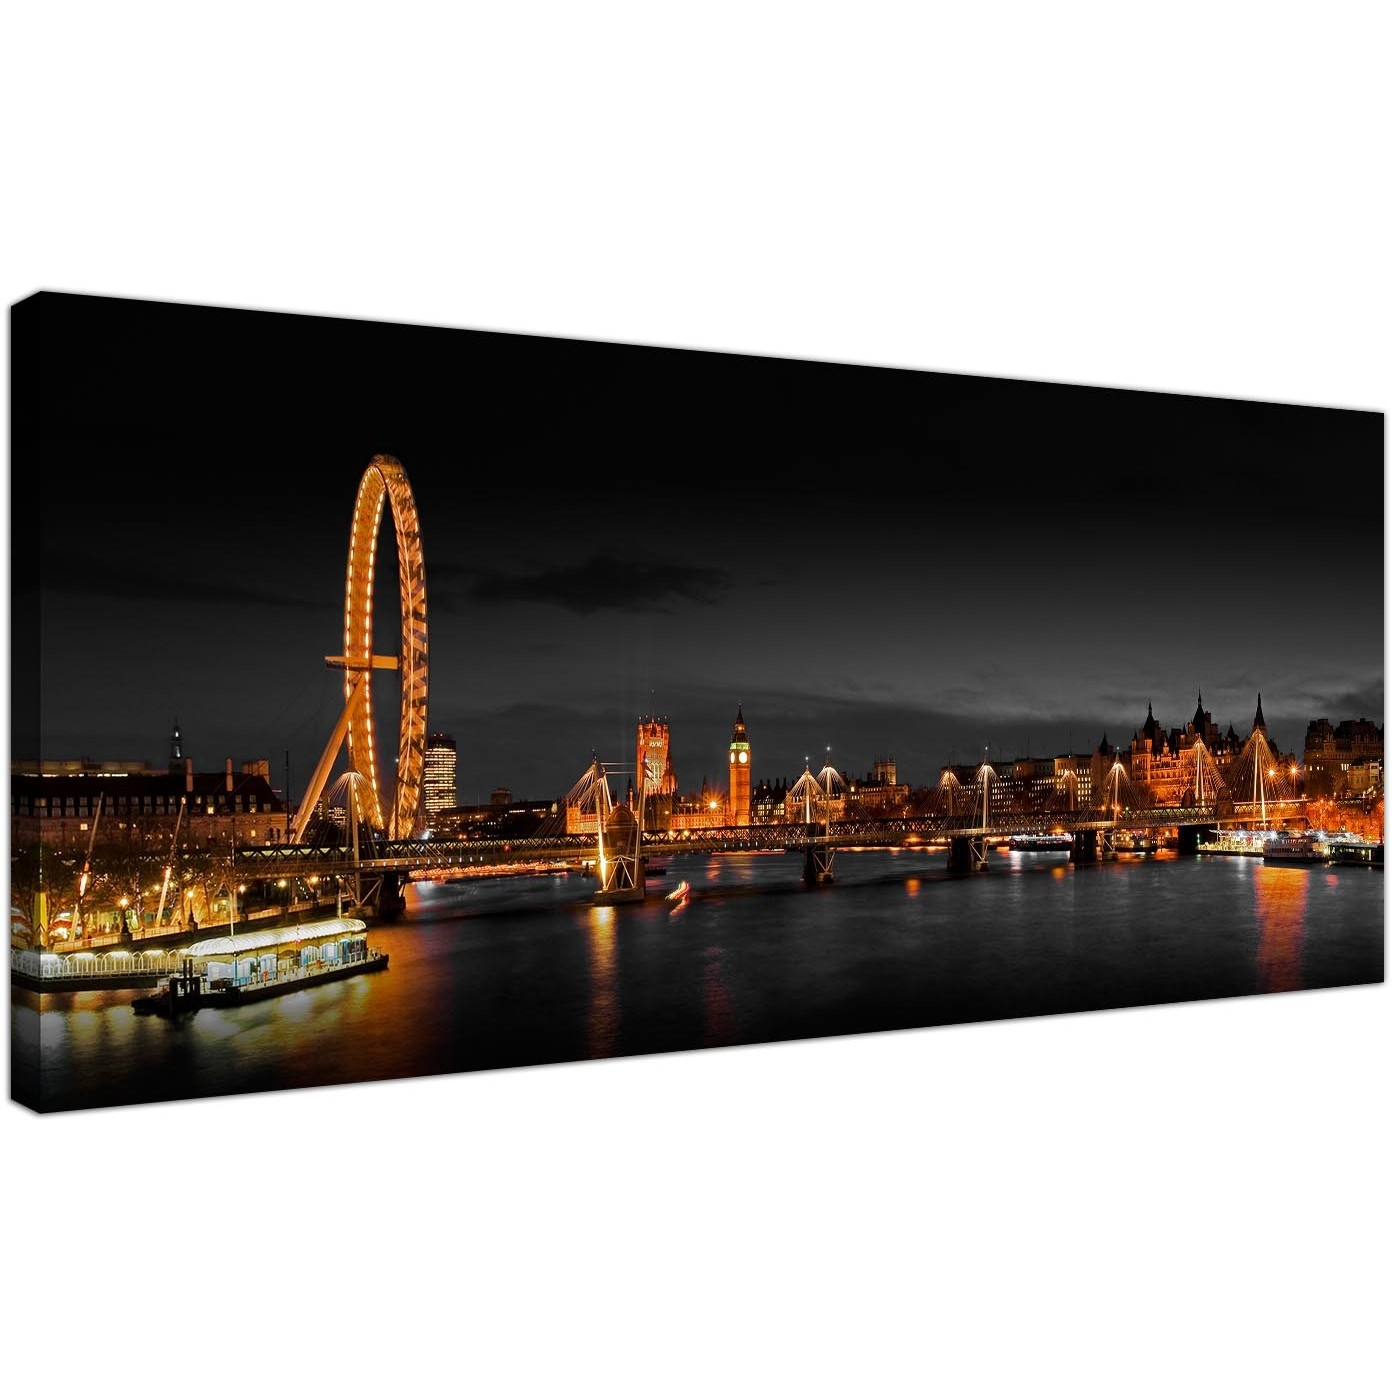 Panoramic Canvas Wall Art Of London Eye At Night For Your Living Room with Most Recently Released Panoramic Wall Art